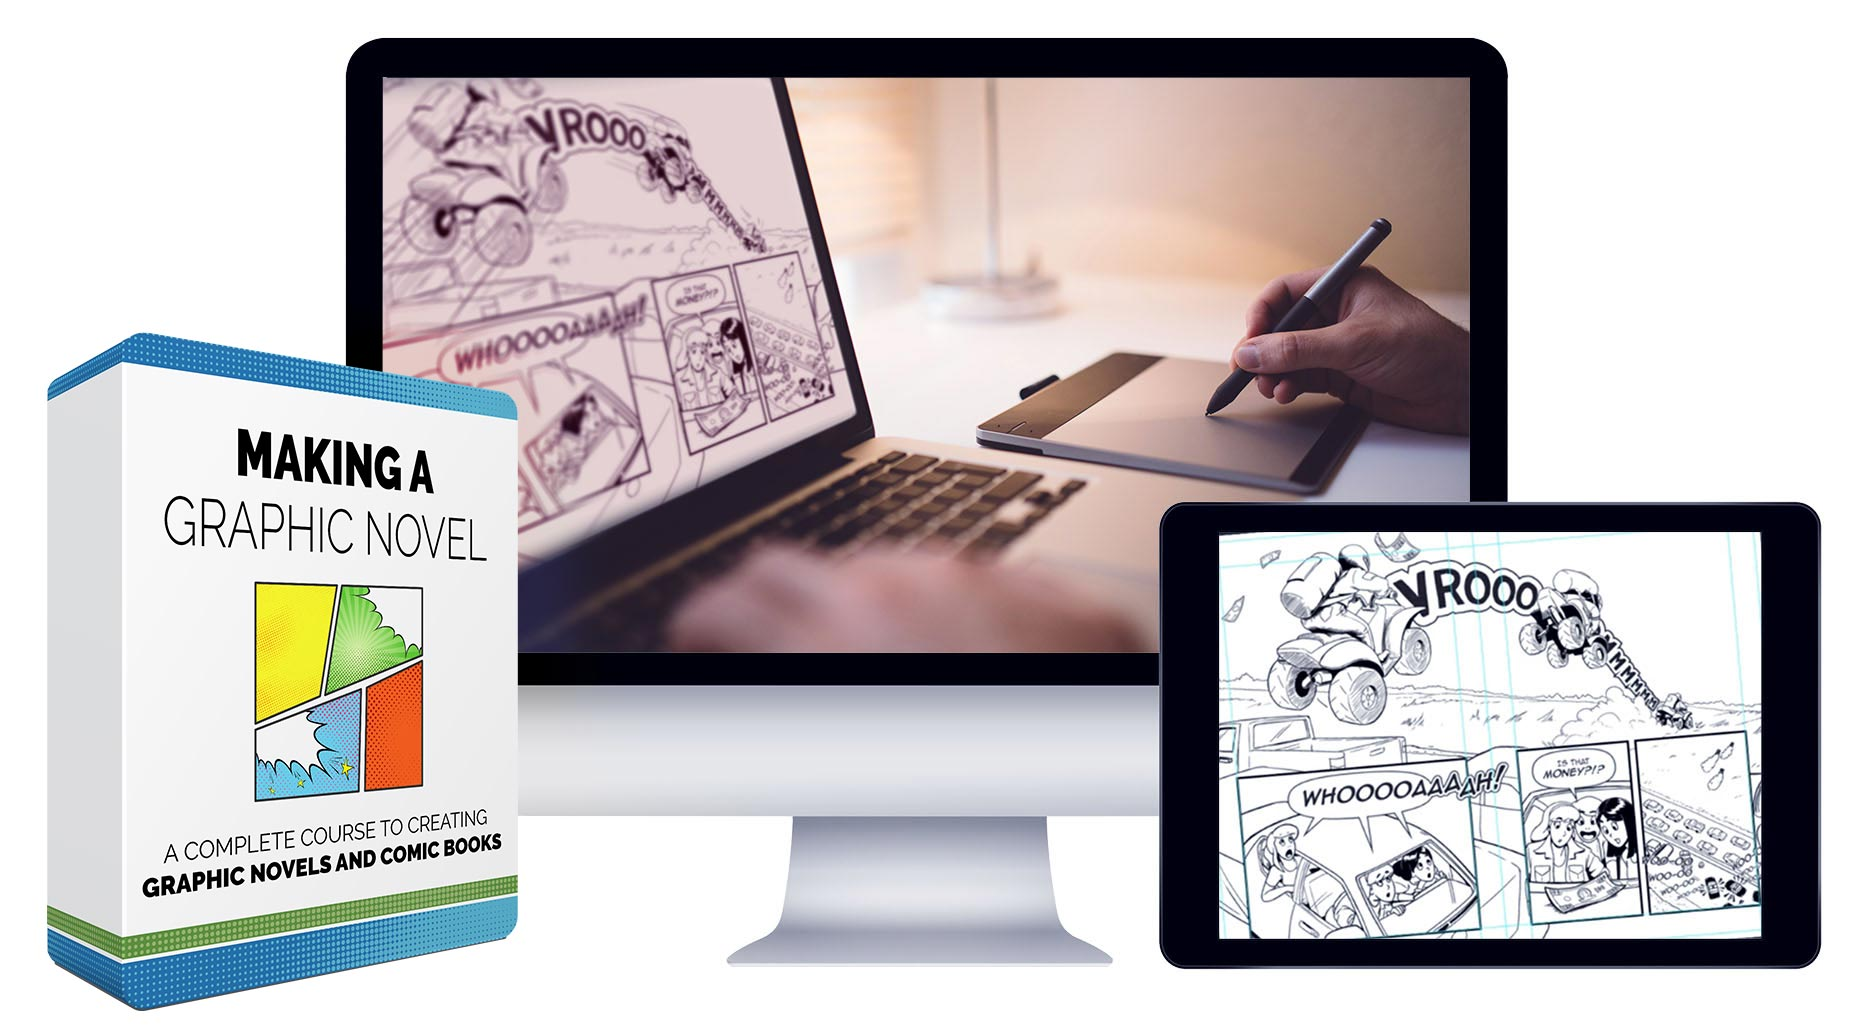 Bloop Animation - Making a Graphic Novel